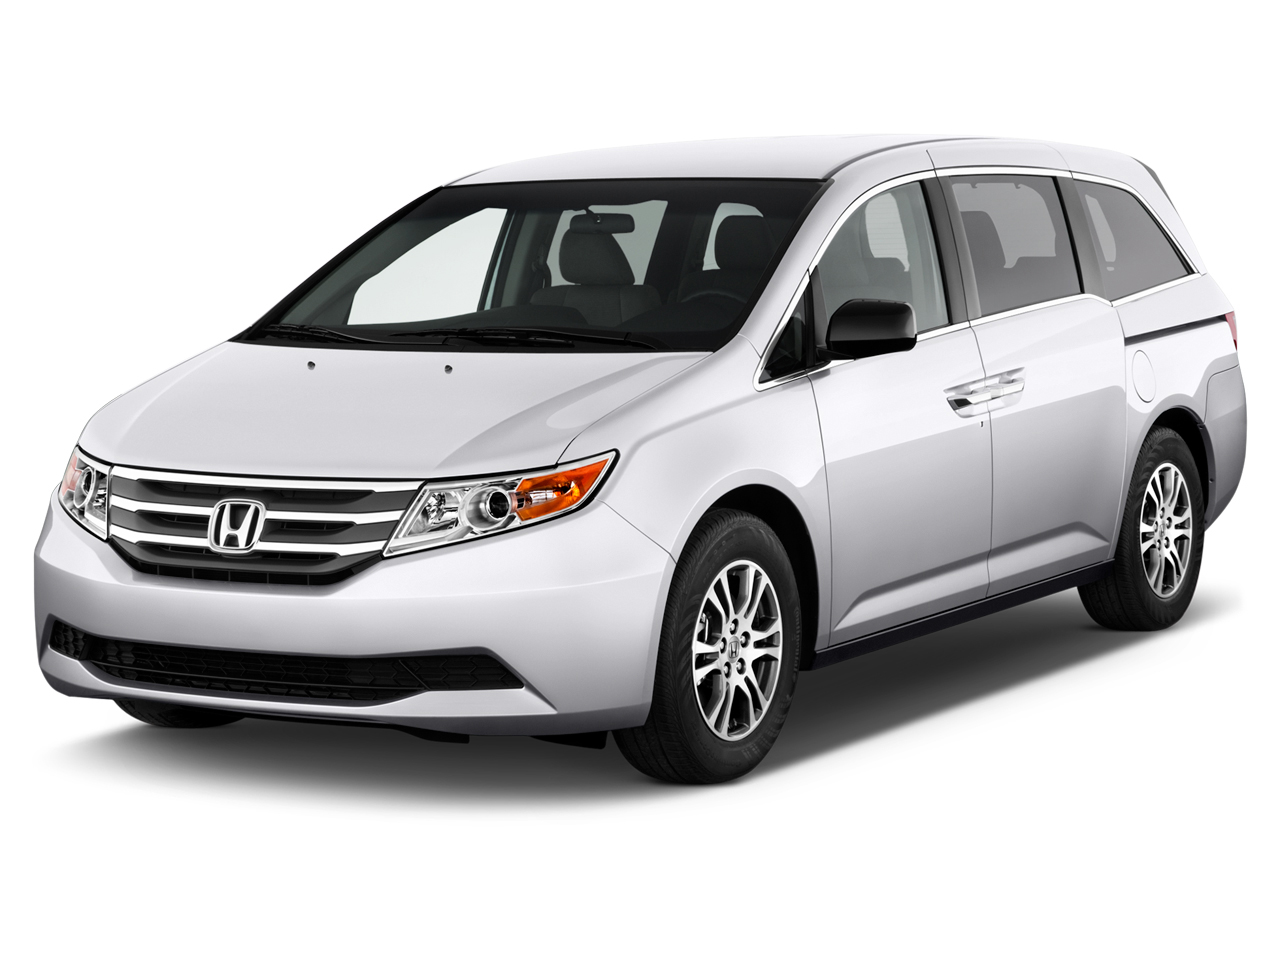 Hyundai Of Louisville >> 2012 Honda Odyssey Review, Ratings, Specs, Prices, and Photos - The Car Connection